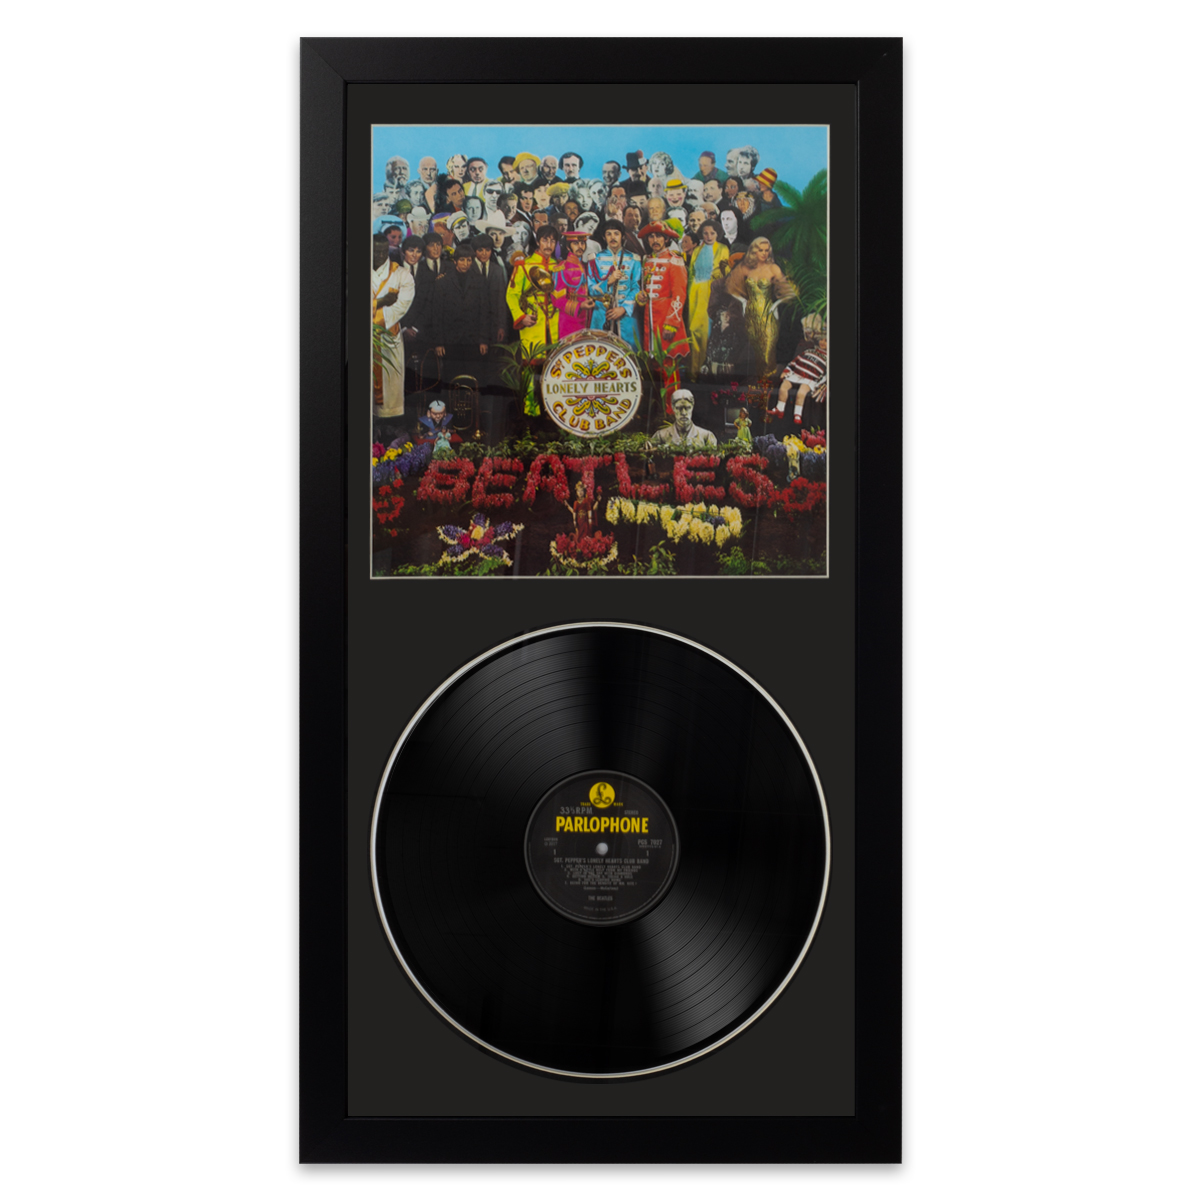 The Beatles Sgt. Peppers Wall Album